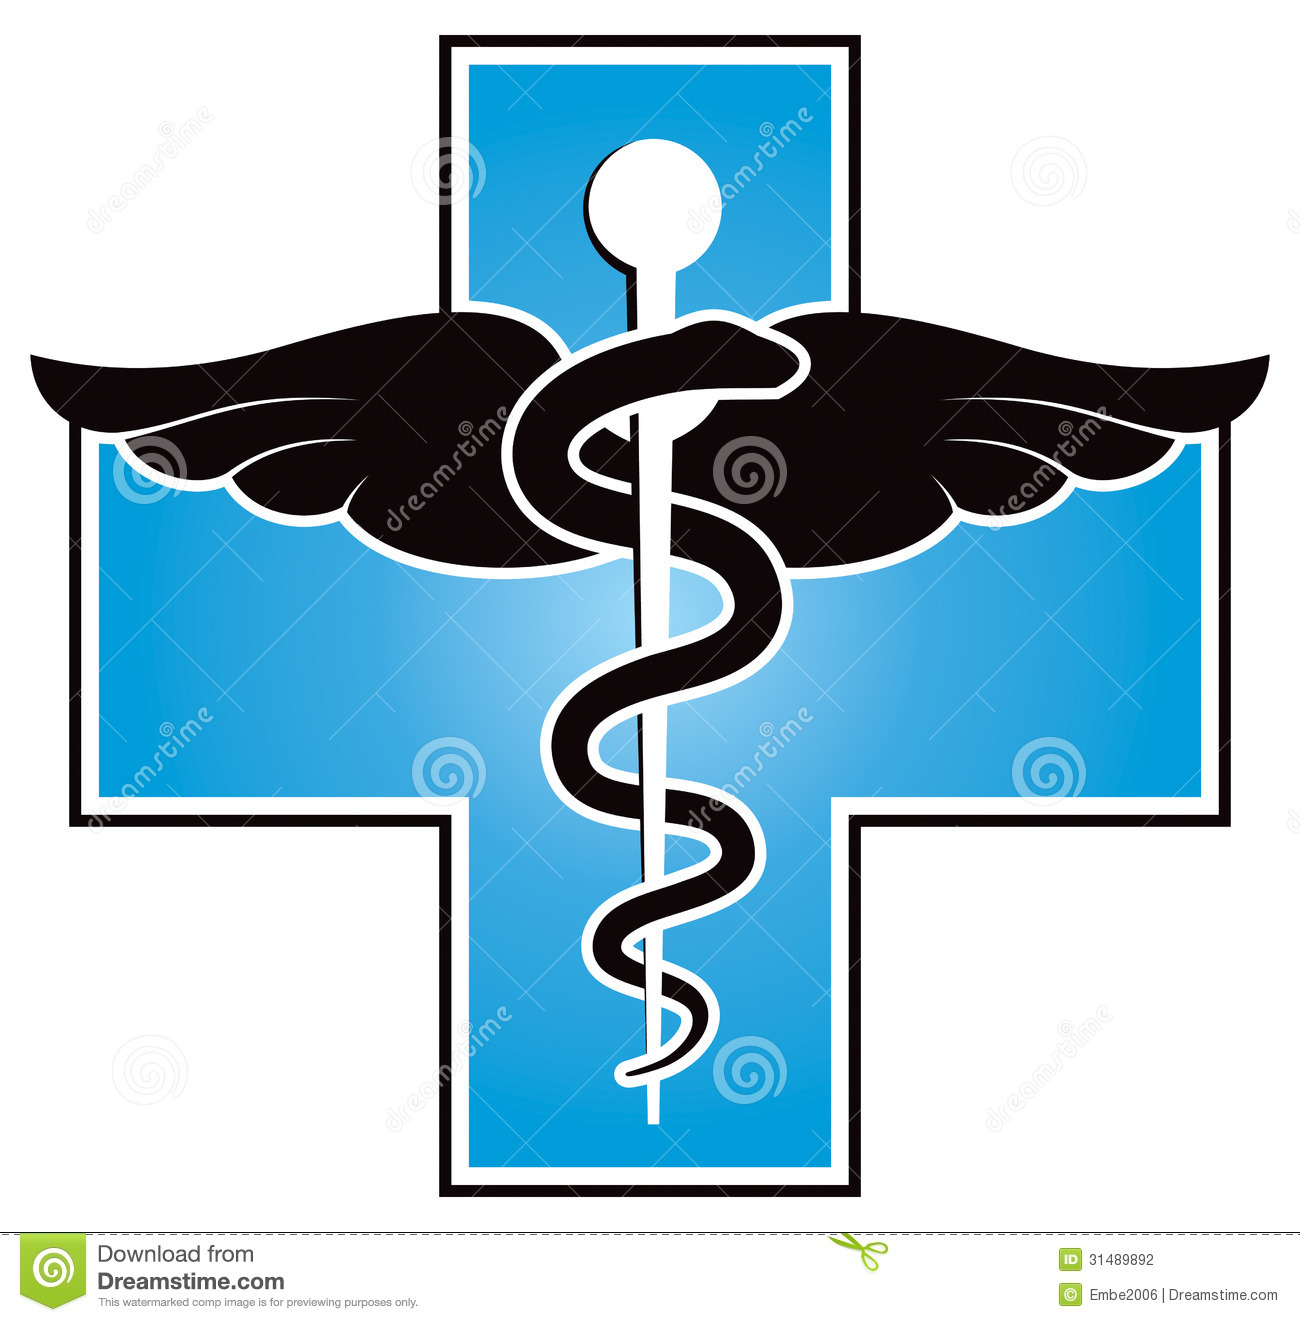 medical-symbol-medicine-logo-icon-31489892.jpg